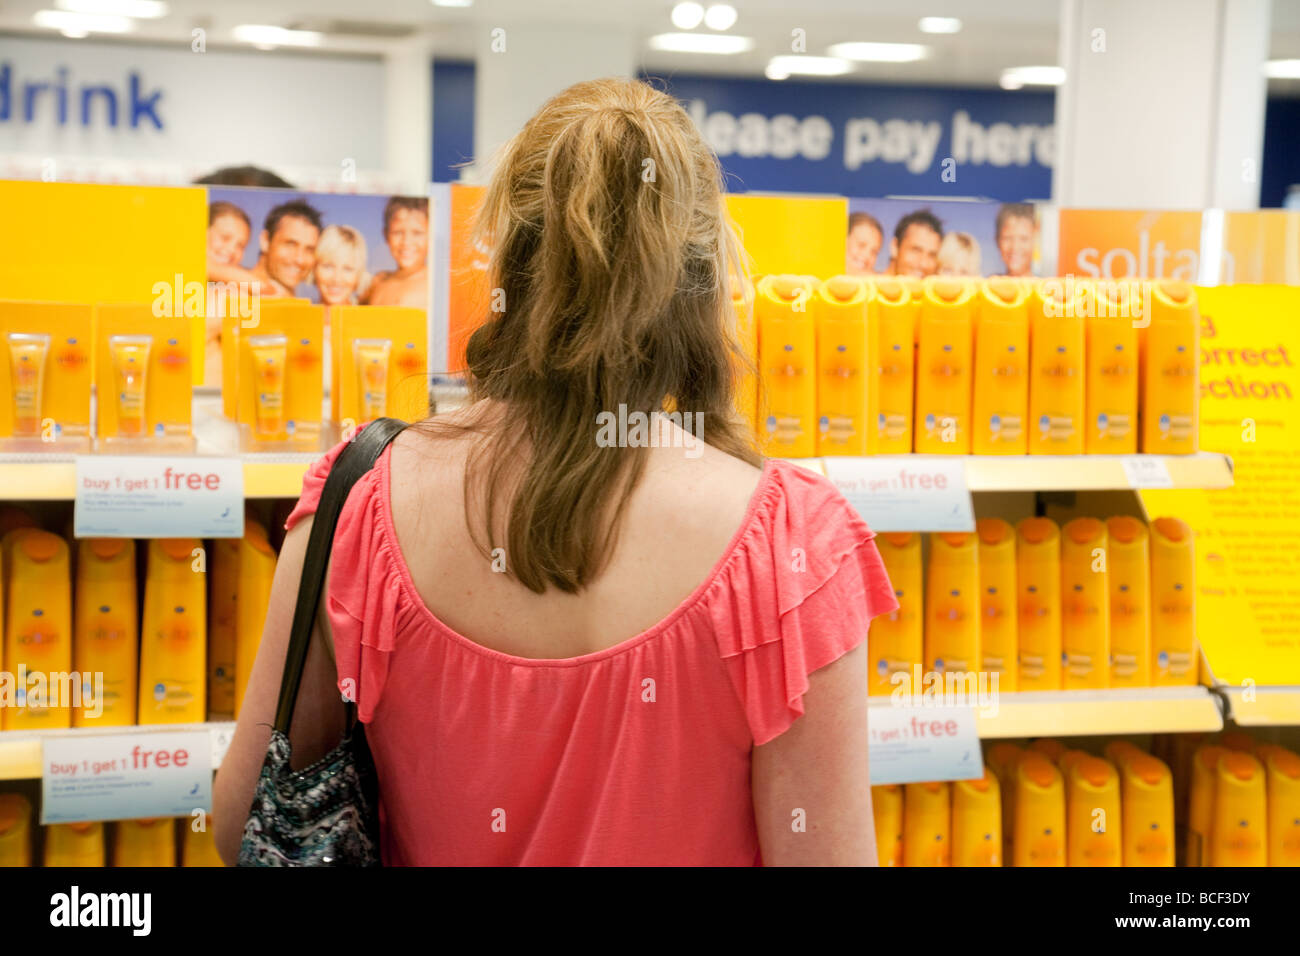 A woman buying sun tan lotion, Boots chemist, North terminal, Gatwick airport, UK - Stock Image